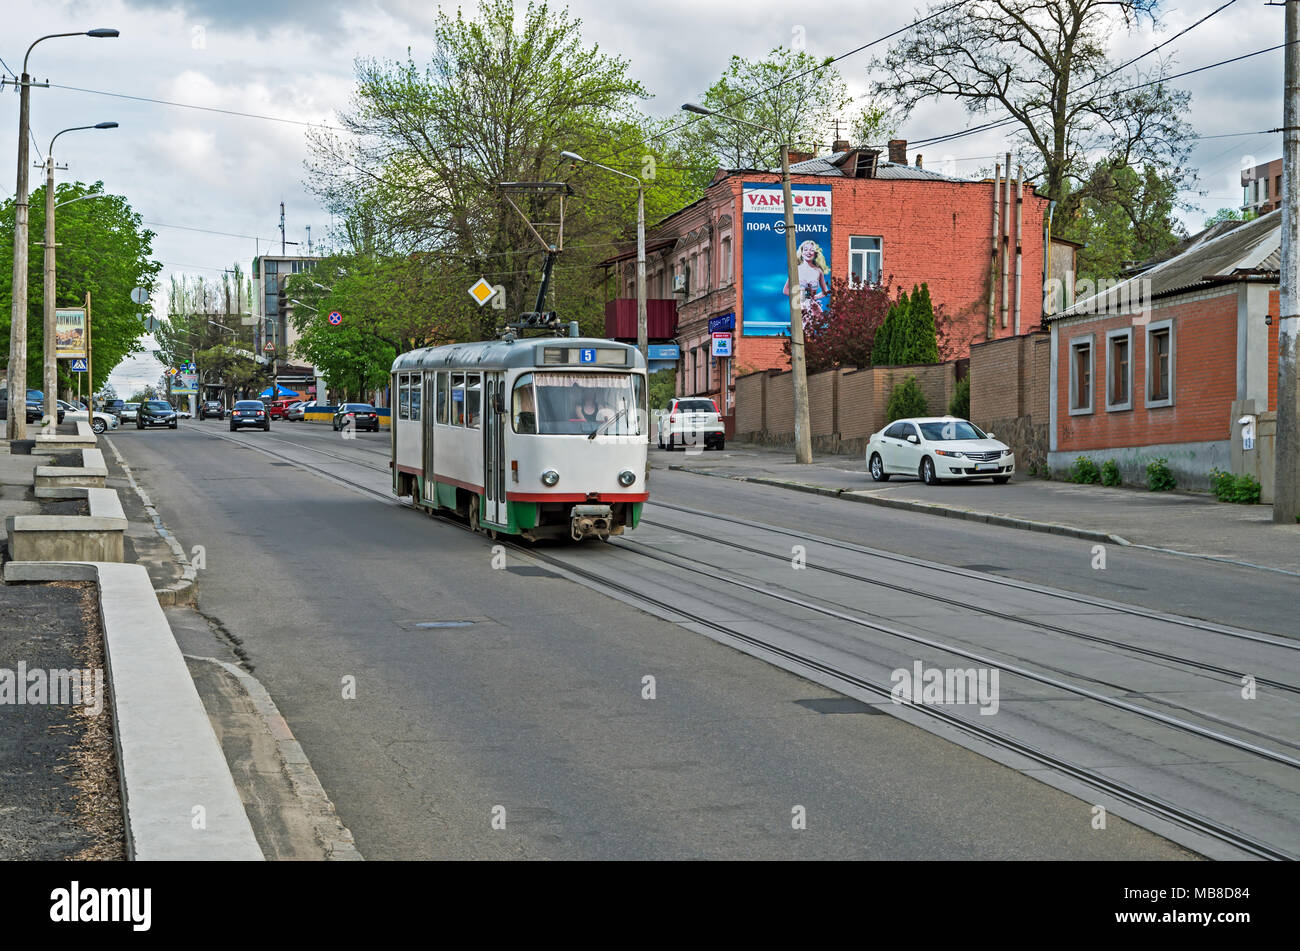 Dnipro, Ukraine - April 19, 2016: Tramway traffic on the city street in middle of spring early in the evening - Stock Image